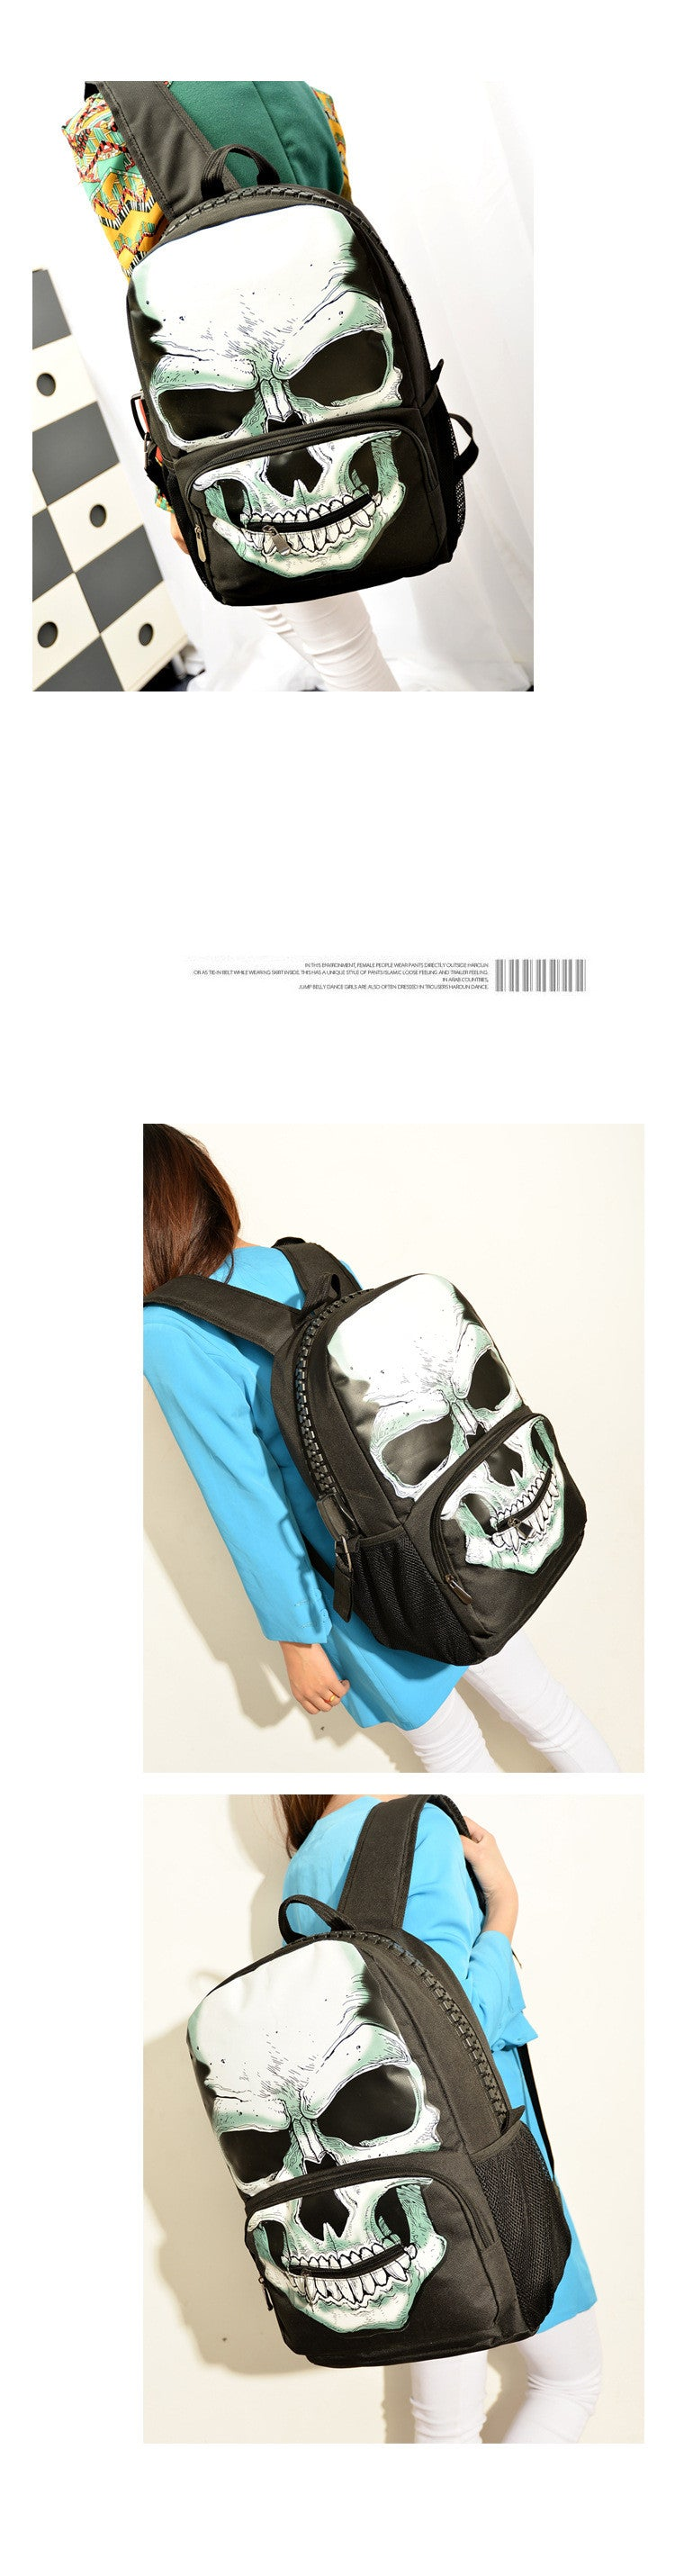 High-Capacity Fashion Skeleton Multiple Pockets School Backpack Bag